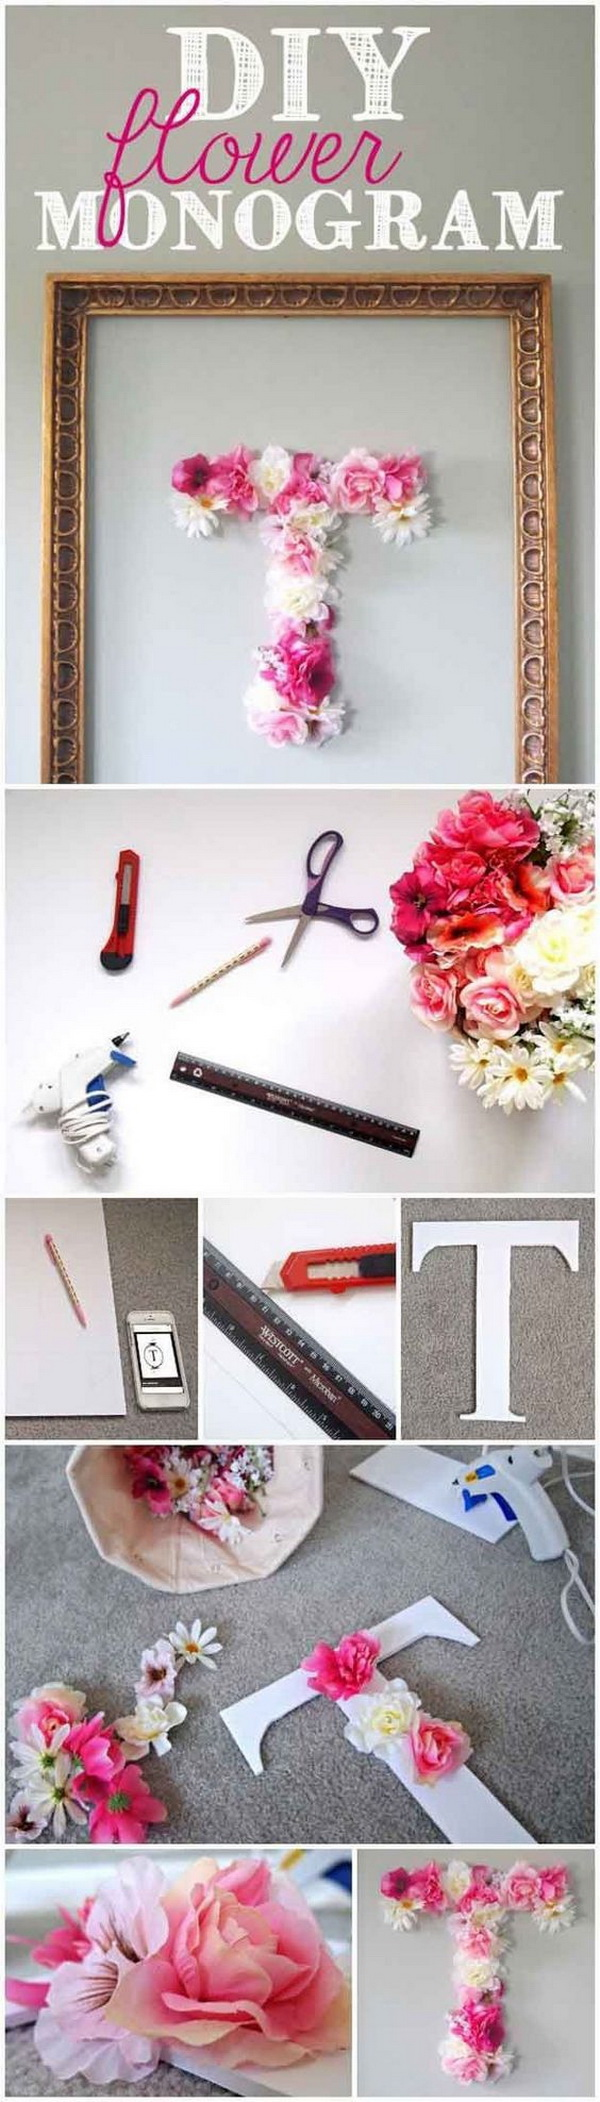 DIY Faux Flower Monogram. Make a pretty decorative letter with faux flowers for teen girls room decor! Totally easy and quick to make in hours!